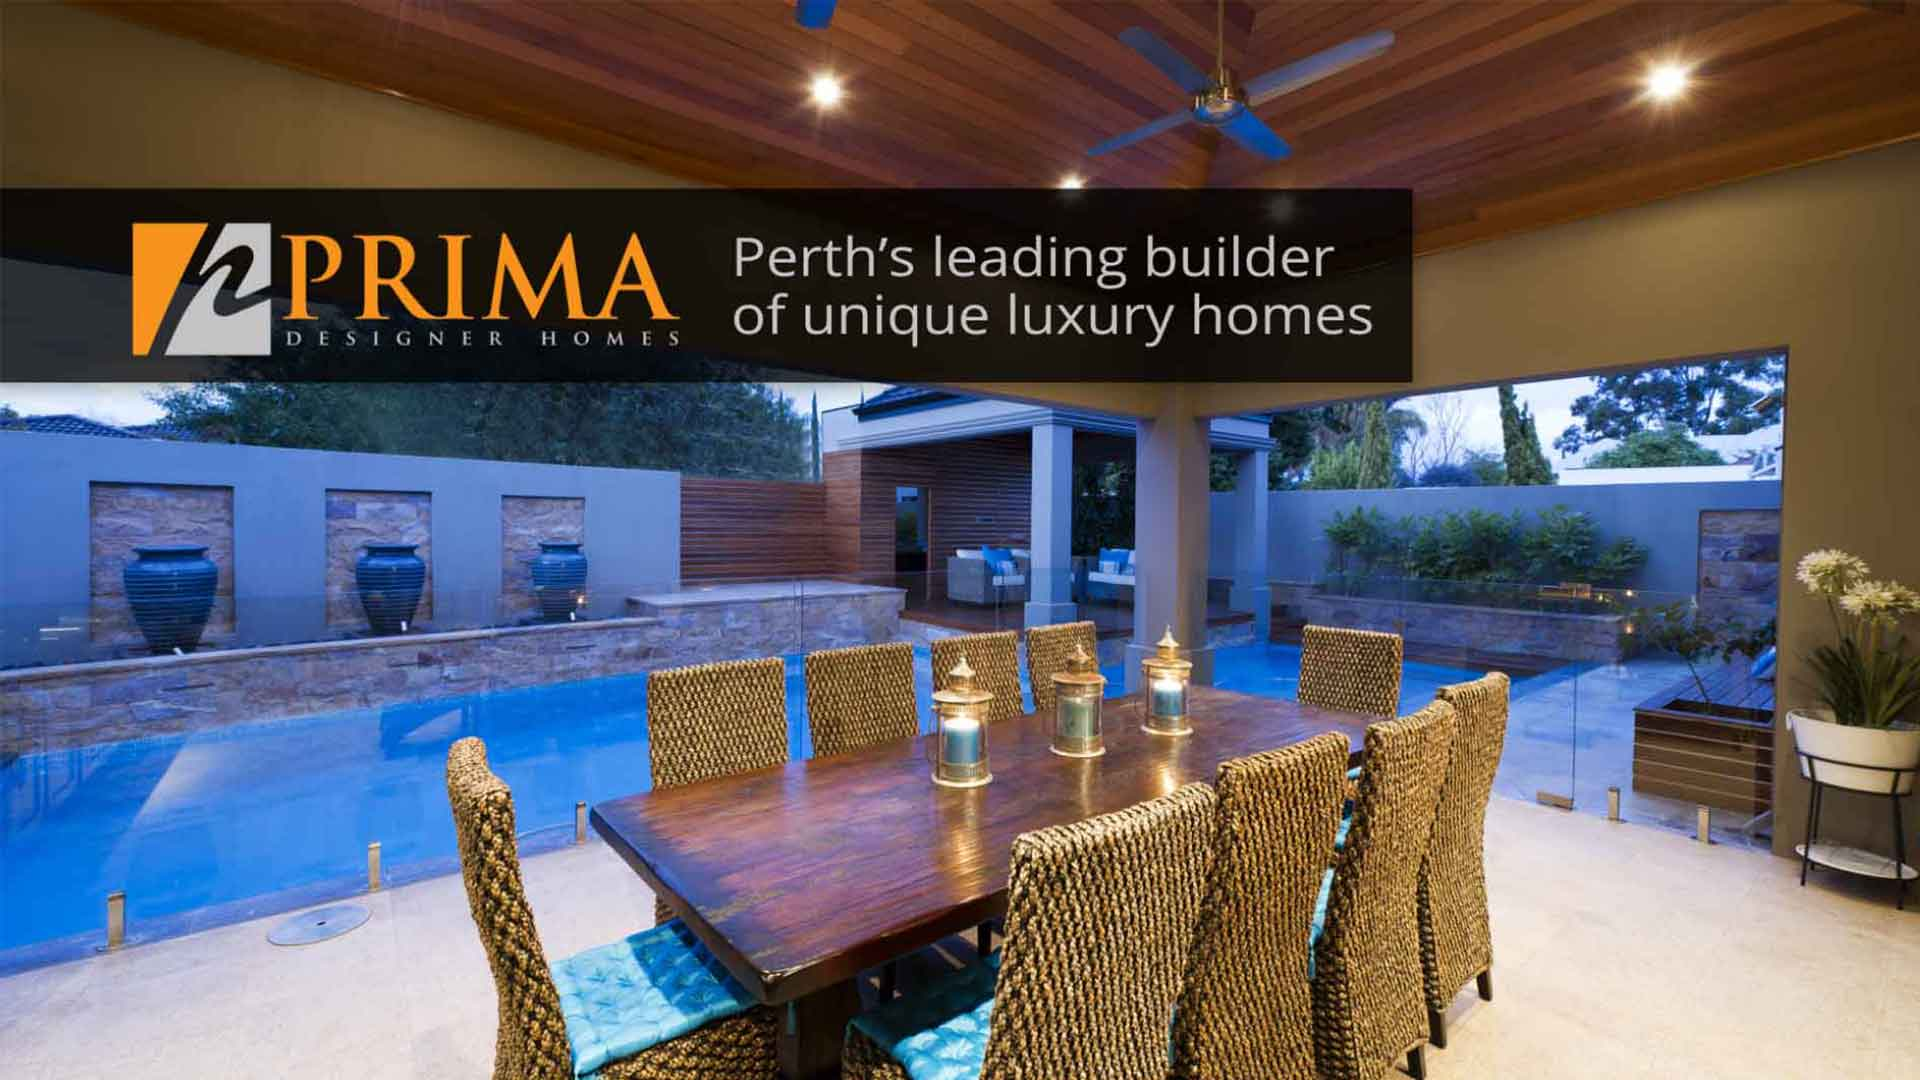 Video of Prima Cutom Home builder Video about the positive difference you experience when building with Prima Homes